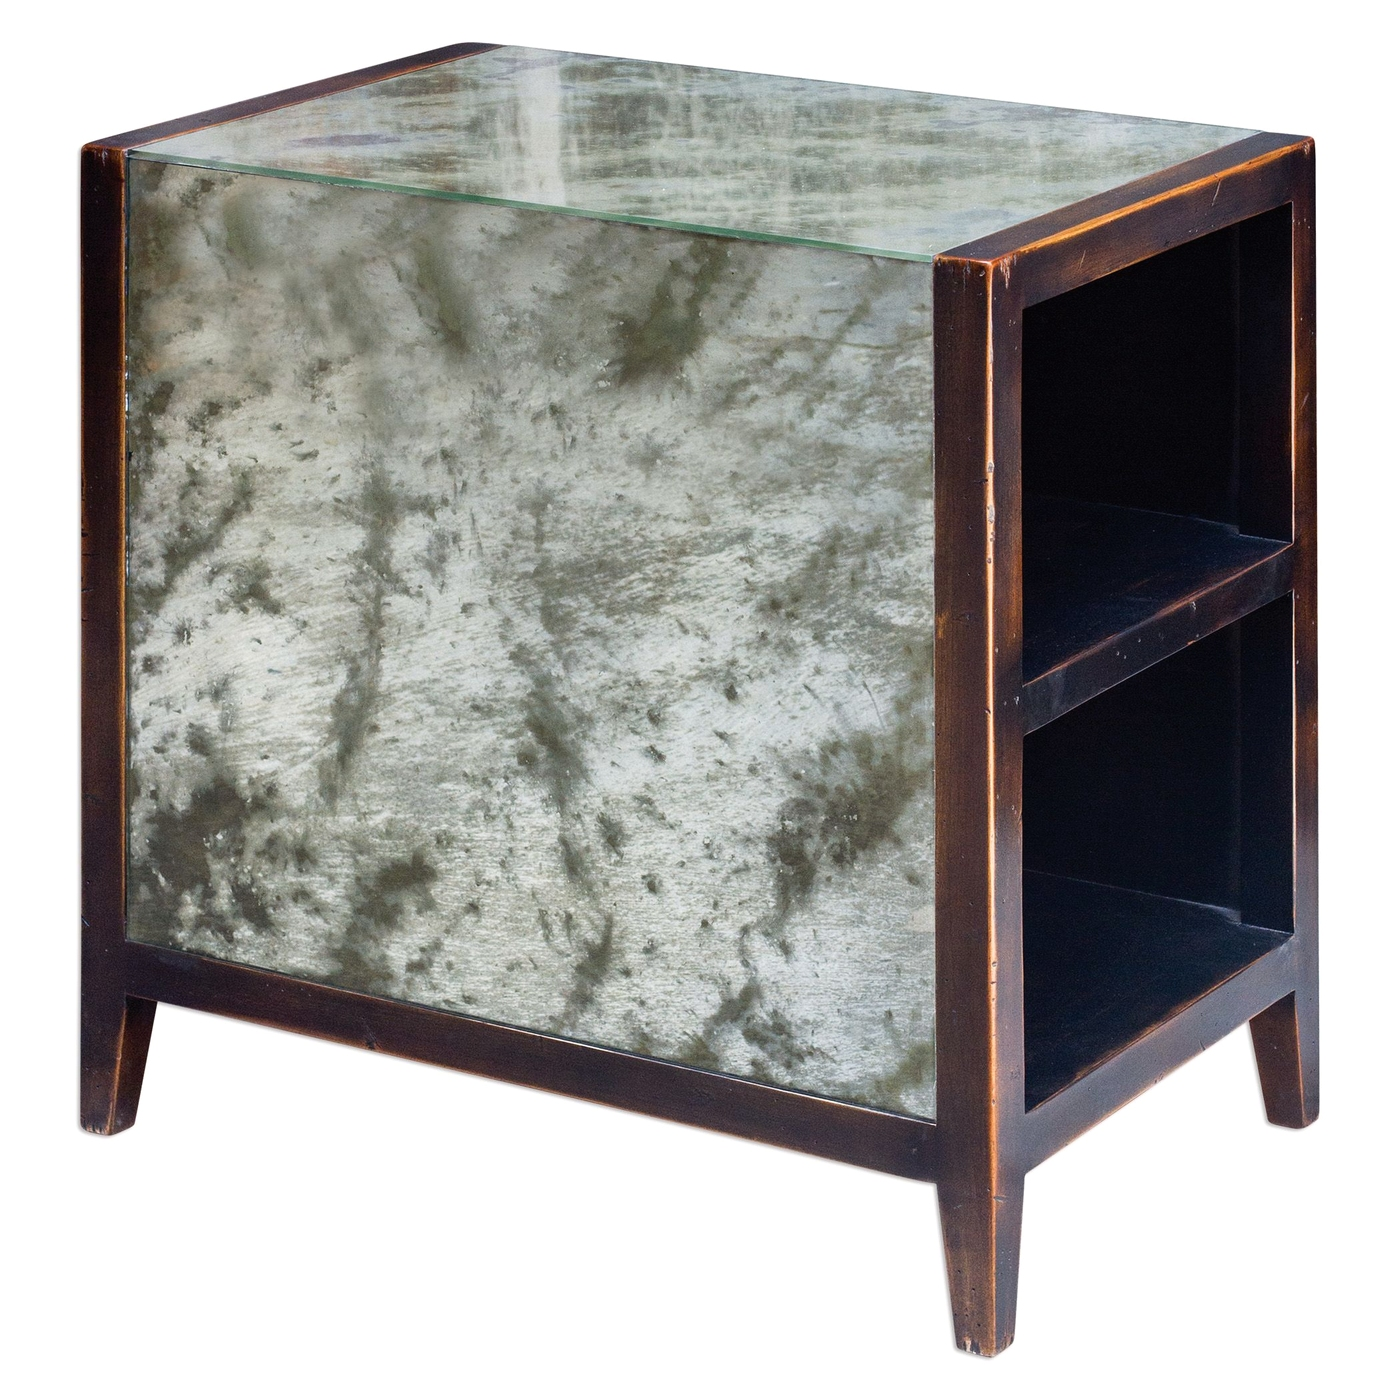 tierney mahogany wood end table with antiqued mirror top and side panel storage. Black Bedroom Furniture Sets. Home Design Ideas